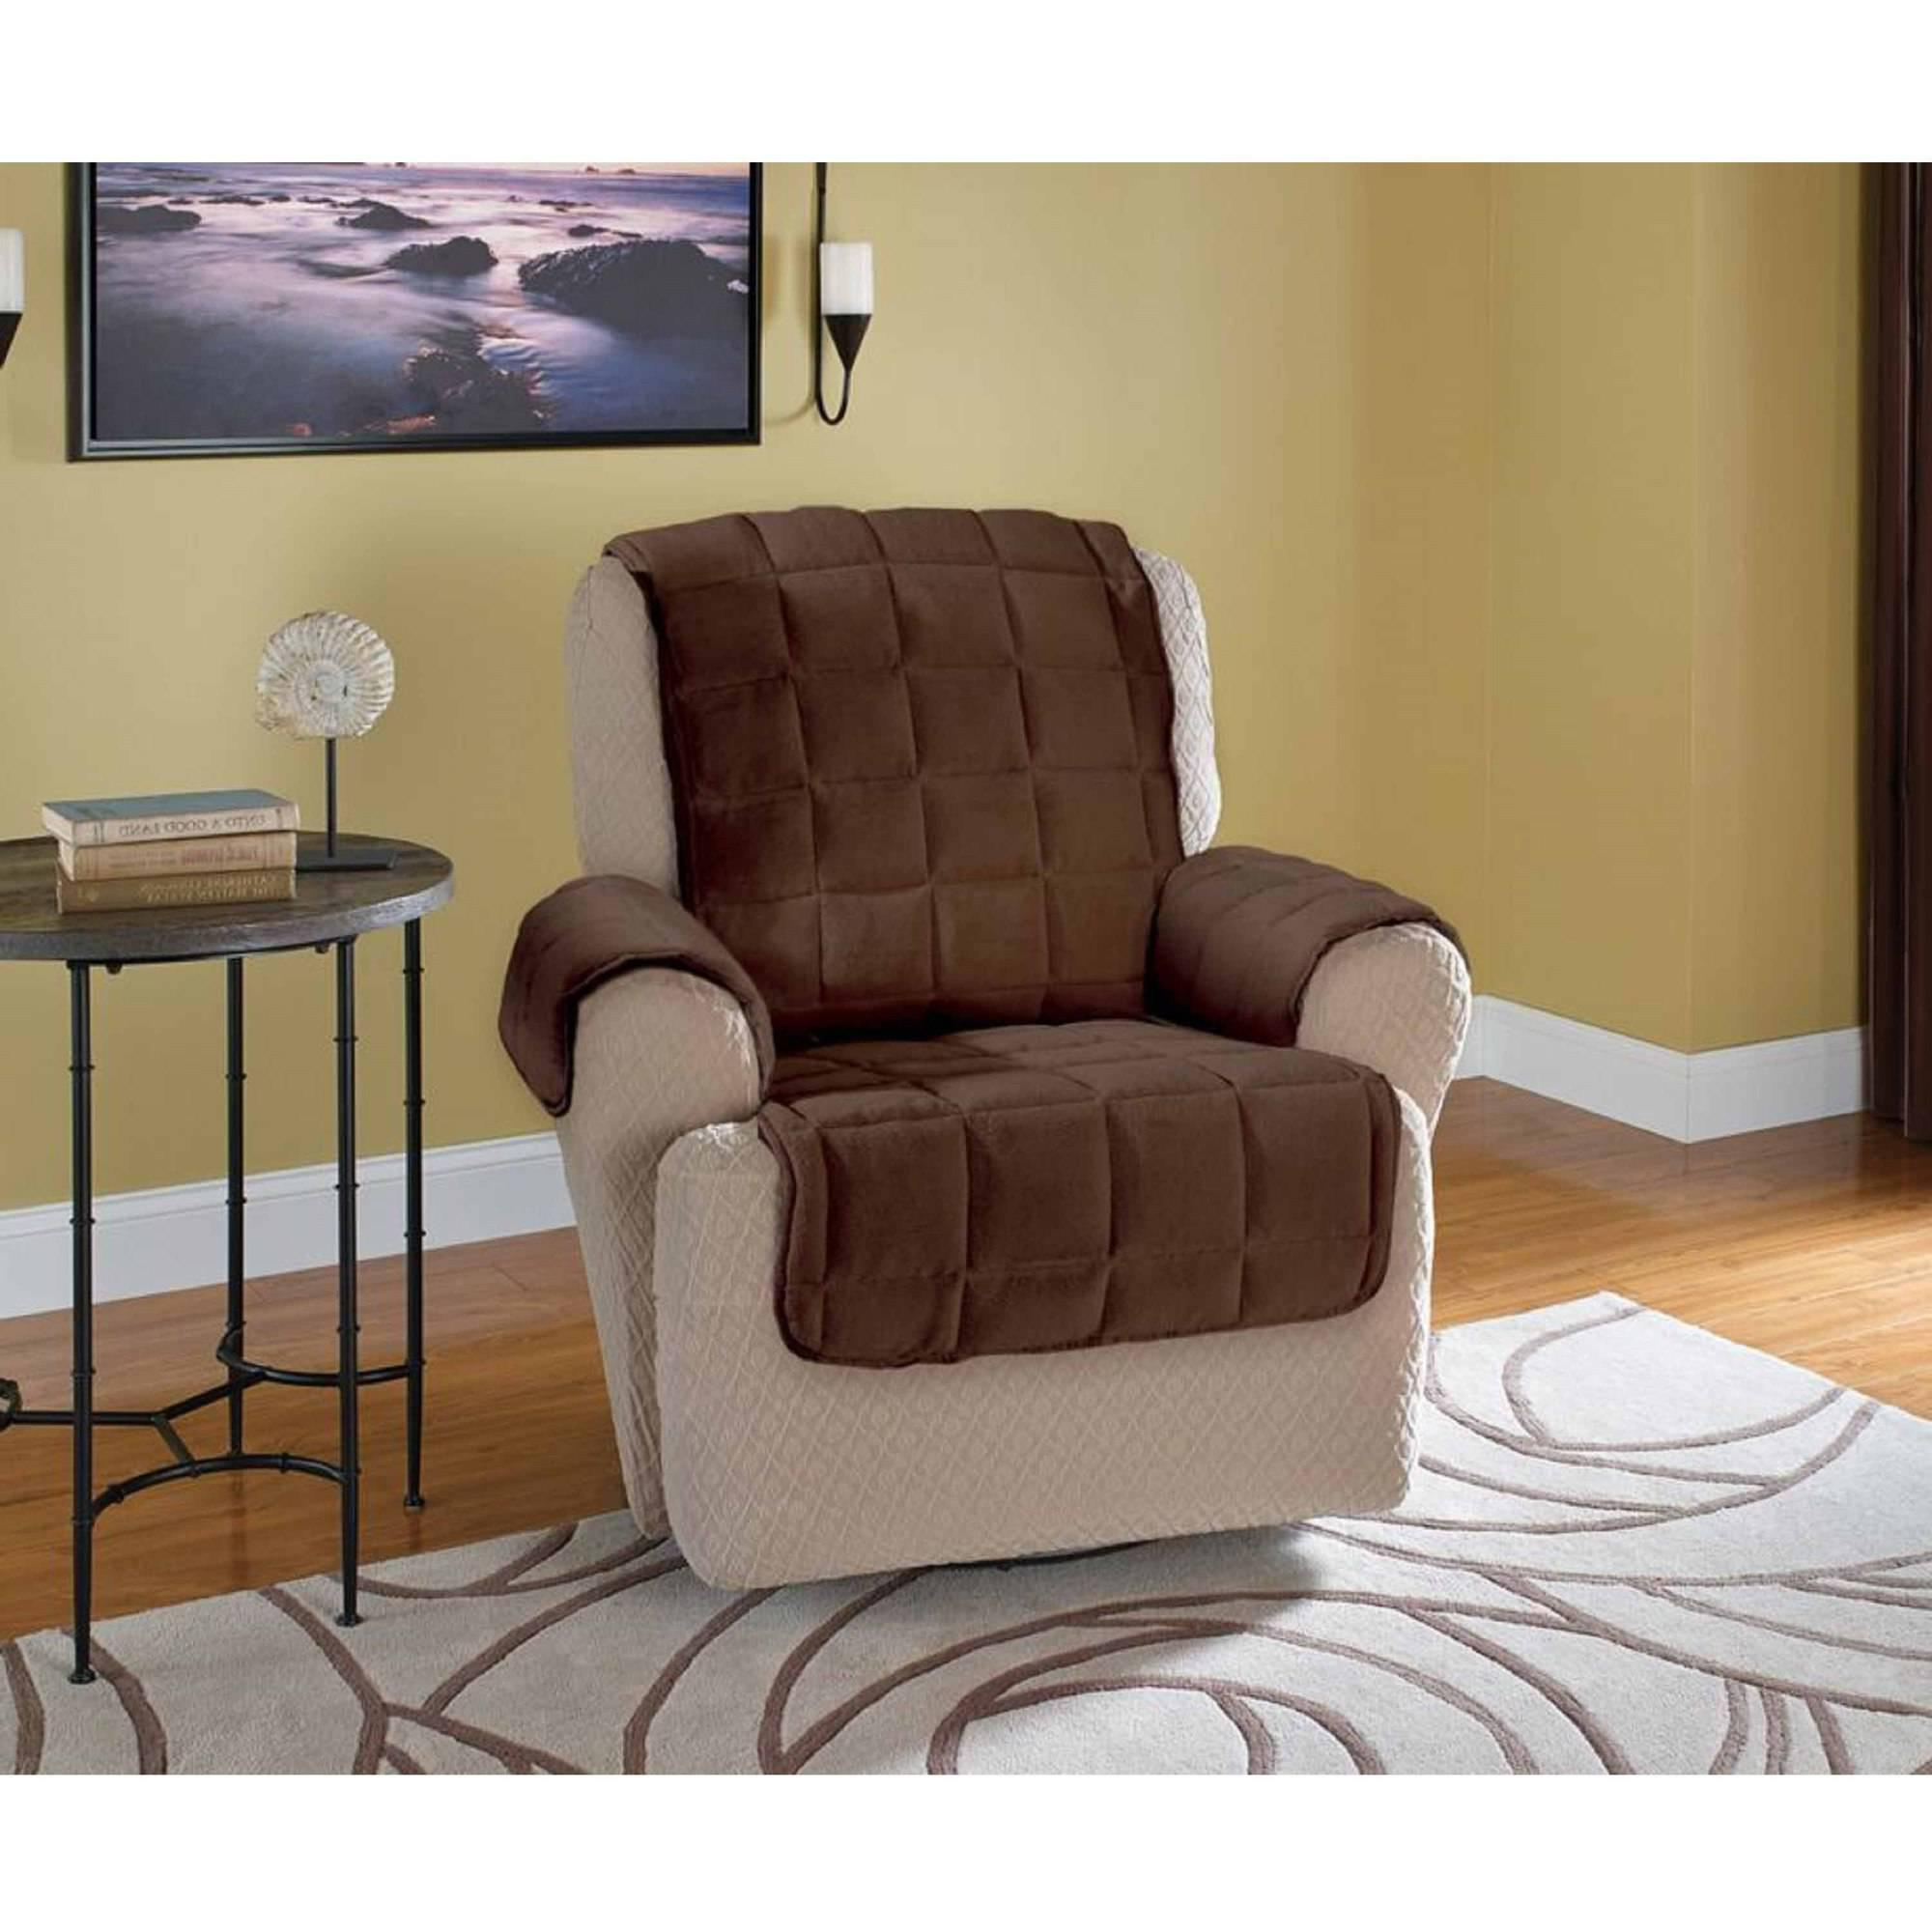 Sofas: Glamour Sofa With Recliner Covers Walmart Design Ideas For Well Known Sofa And Chair Covers (View 19 of 20)